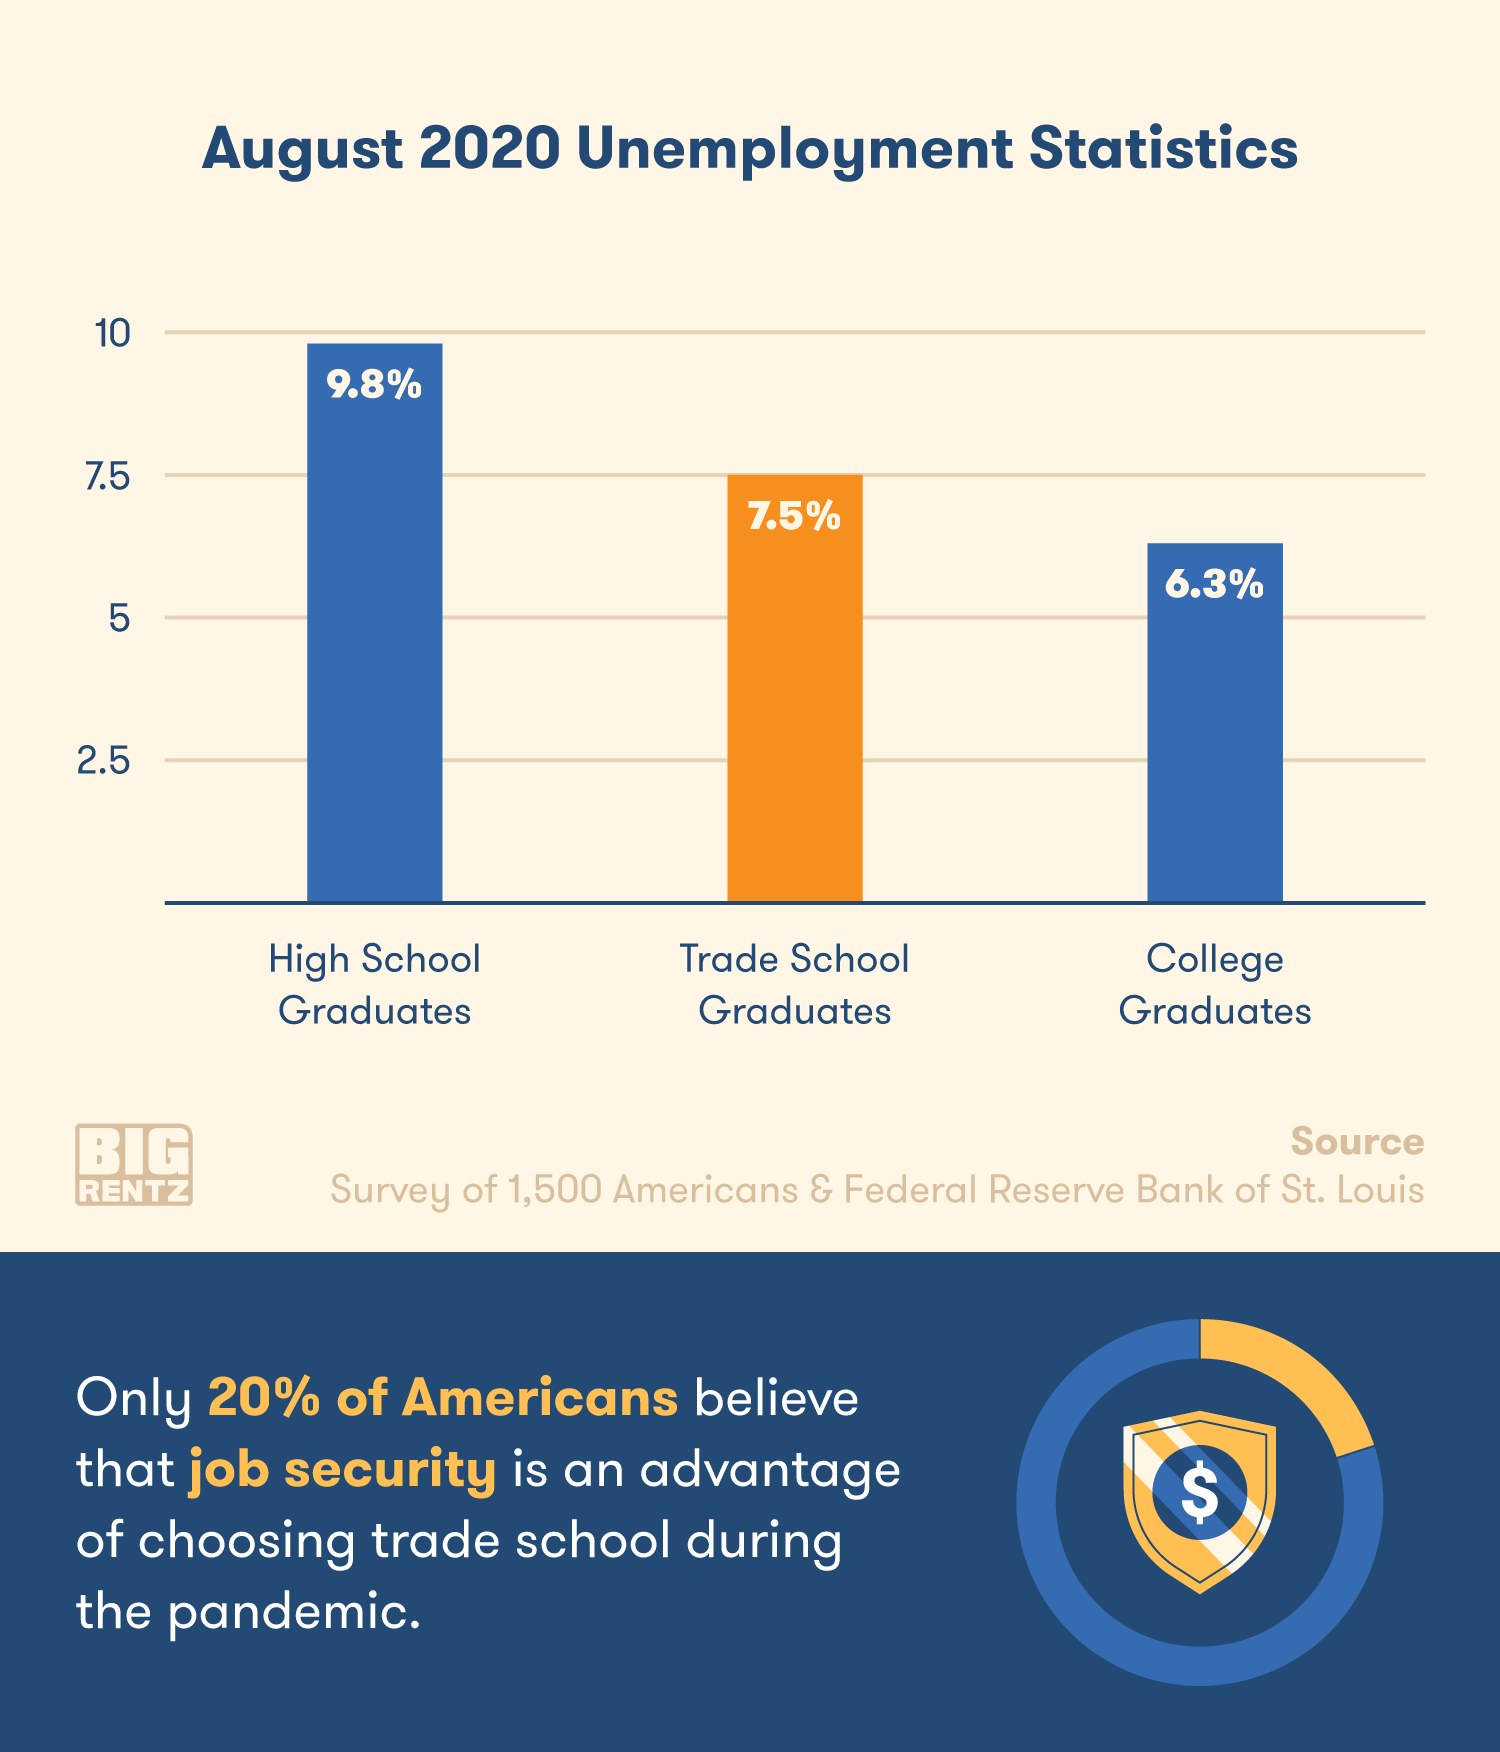 Trade school jobs have relatively low unemployment during the pandemic.